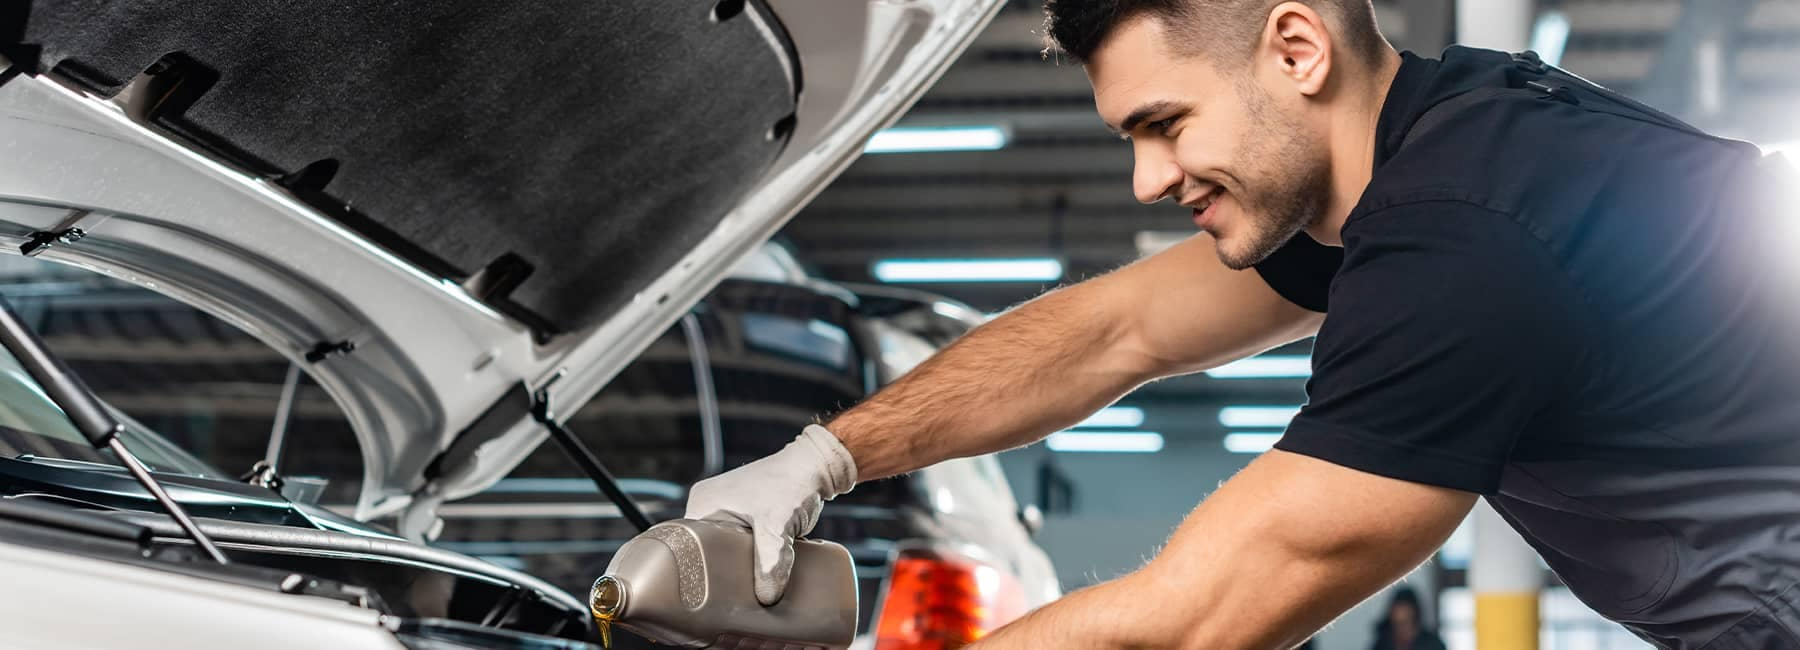 Mechanic replacing engine oil in a vehicle